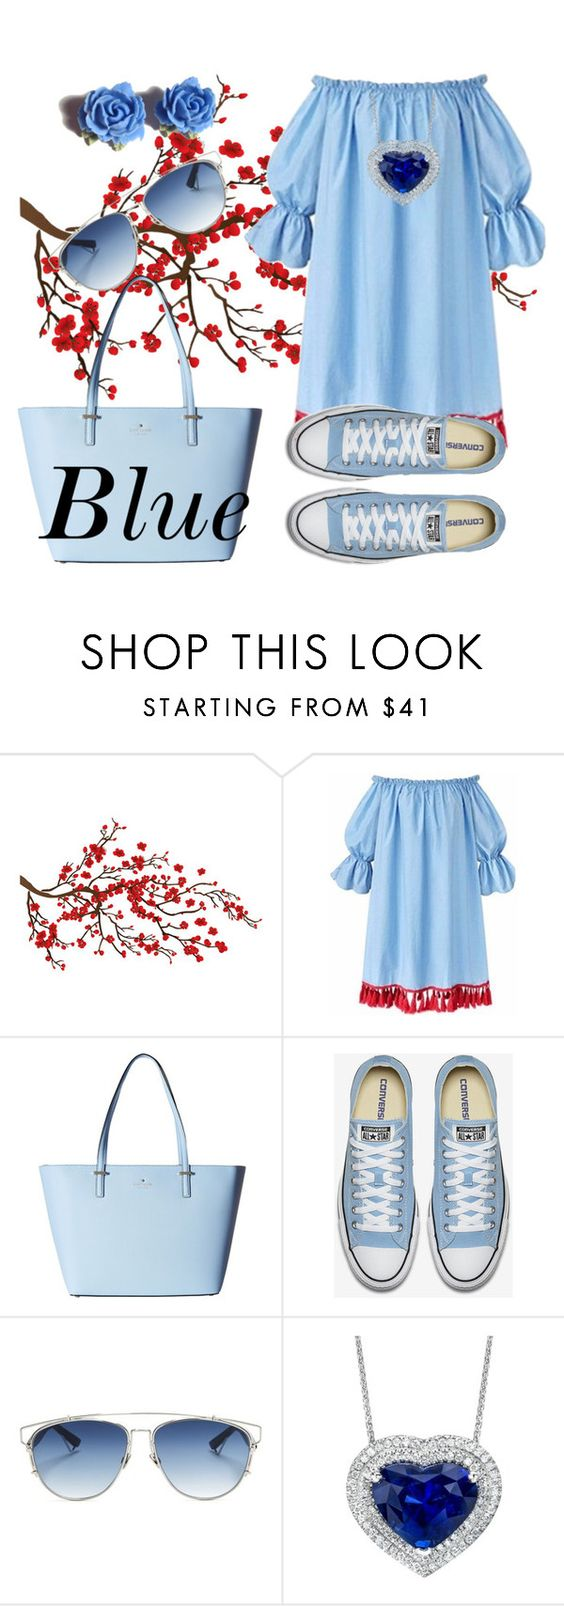 """""""After Blue 😊"""" by lovee-green ❤ liked on Polyvore featuring Brewster Home Fashions, Kate Spade, Christian Dior and Tarina Tarantino"""